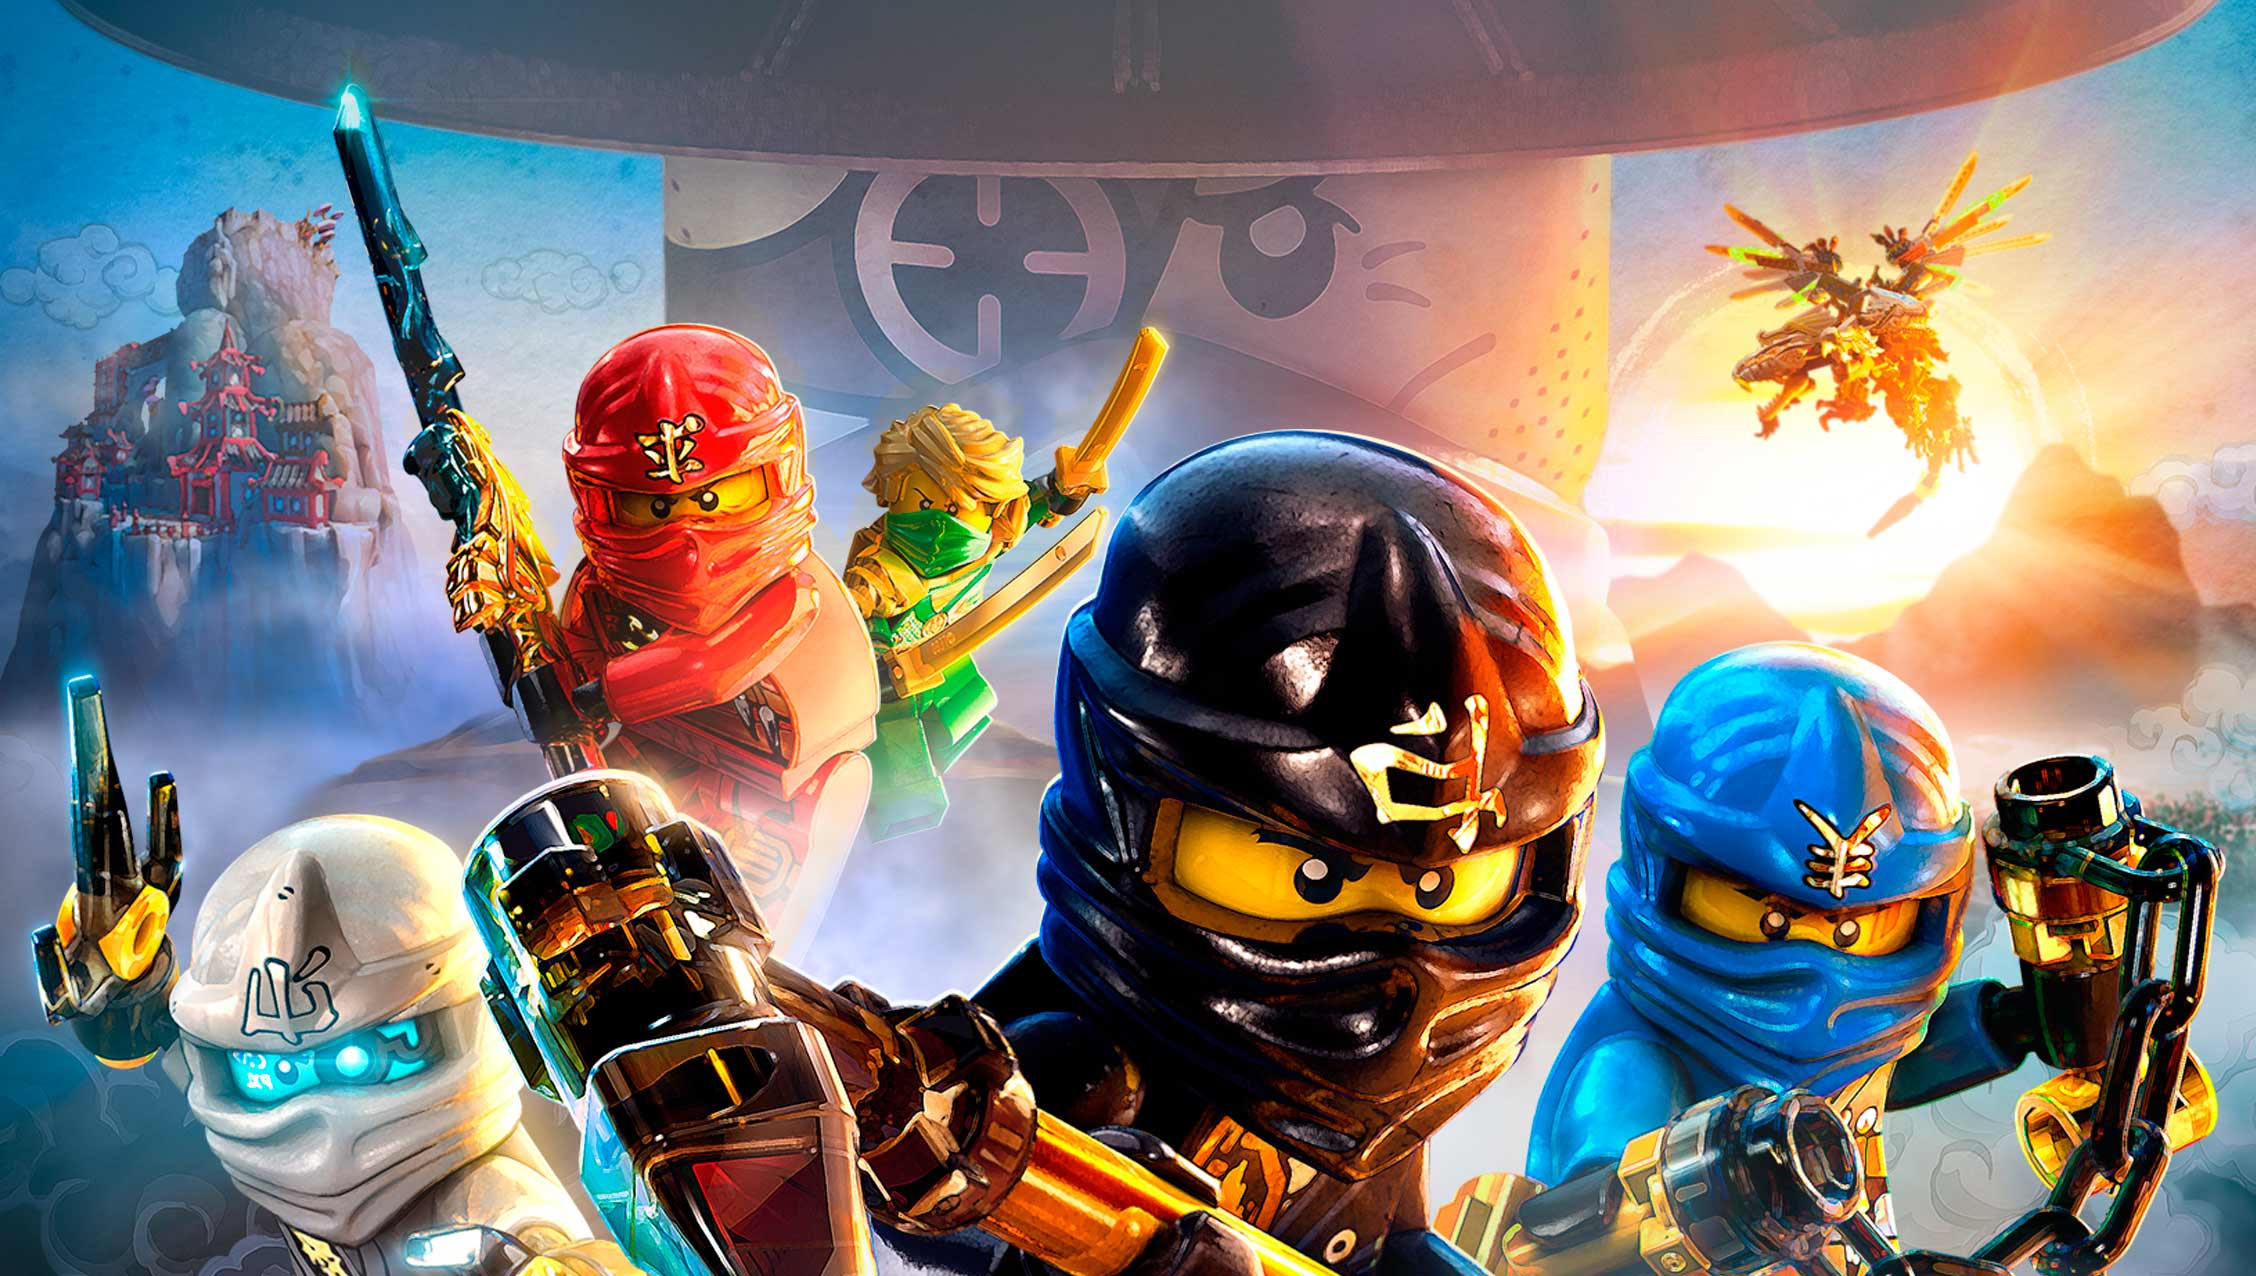 LEGO-Ninjago-Shadow-of-Ronin-Gaming-Cypher